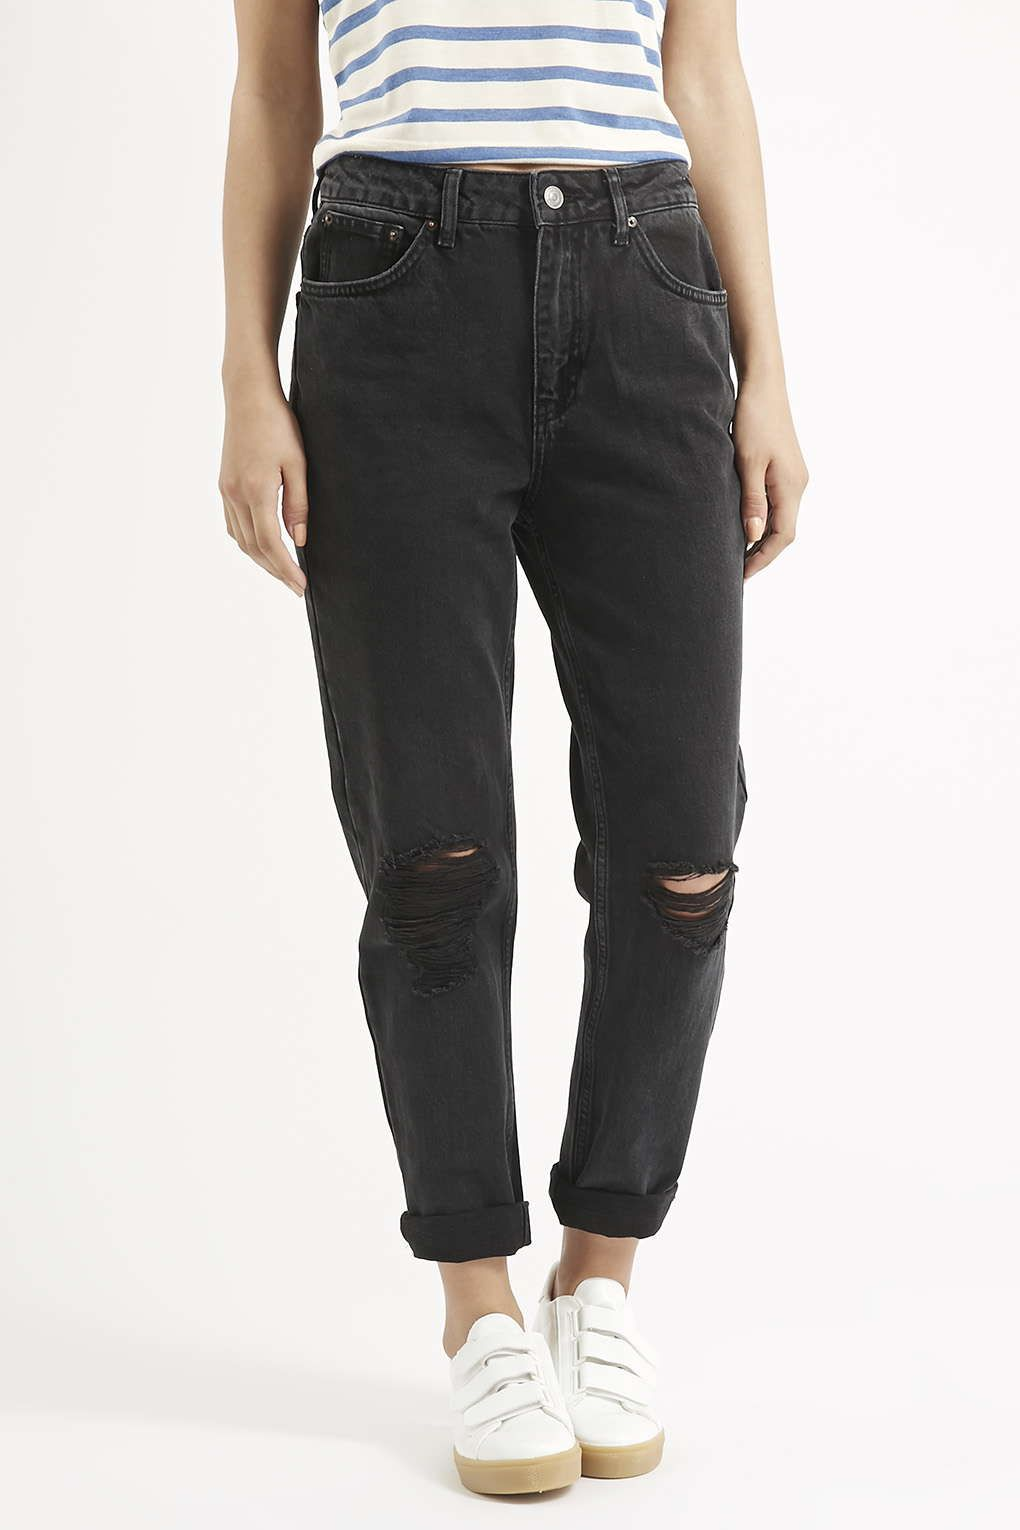 MOTO Washed Black Ripped Mom Jeans - Jeans - Clothing ...